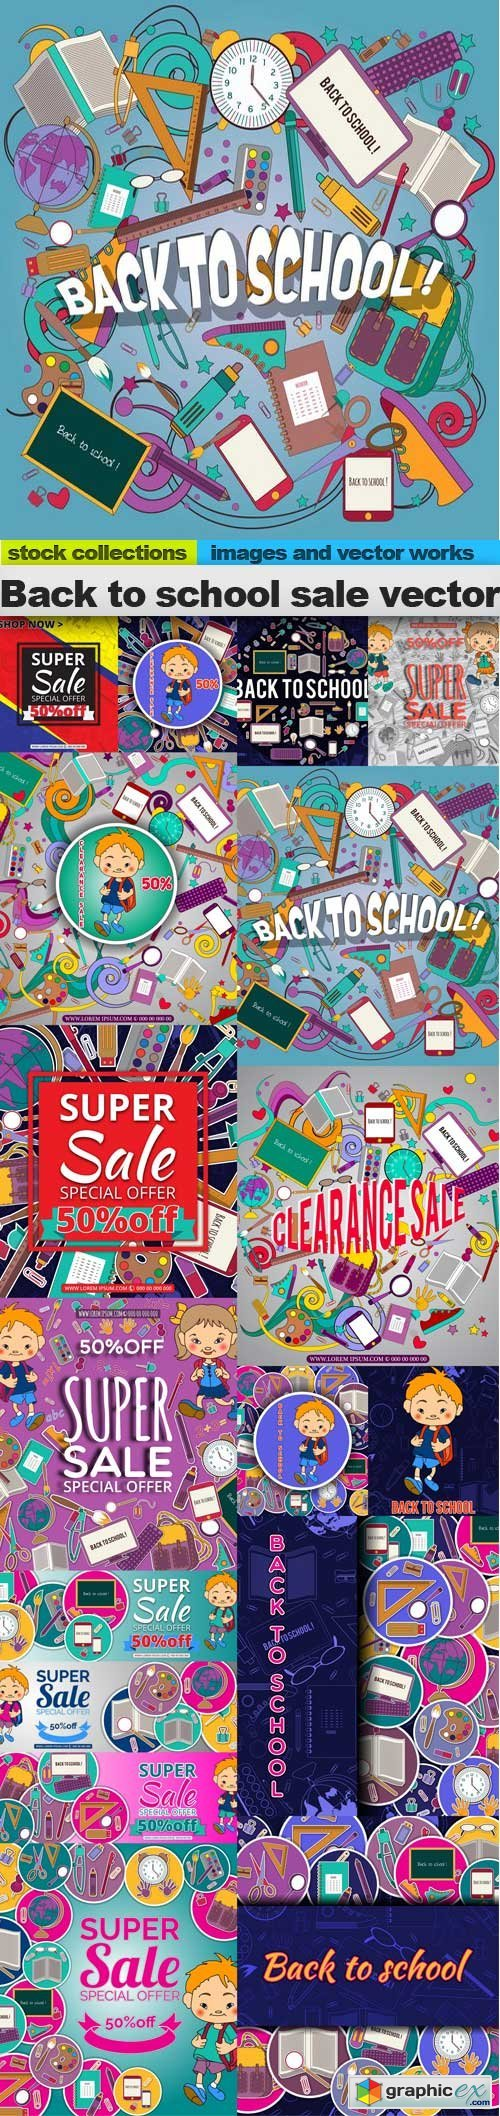 Back to school sale vector, 15 x EPS